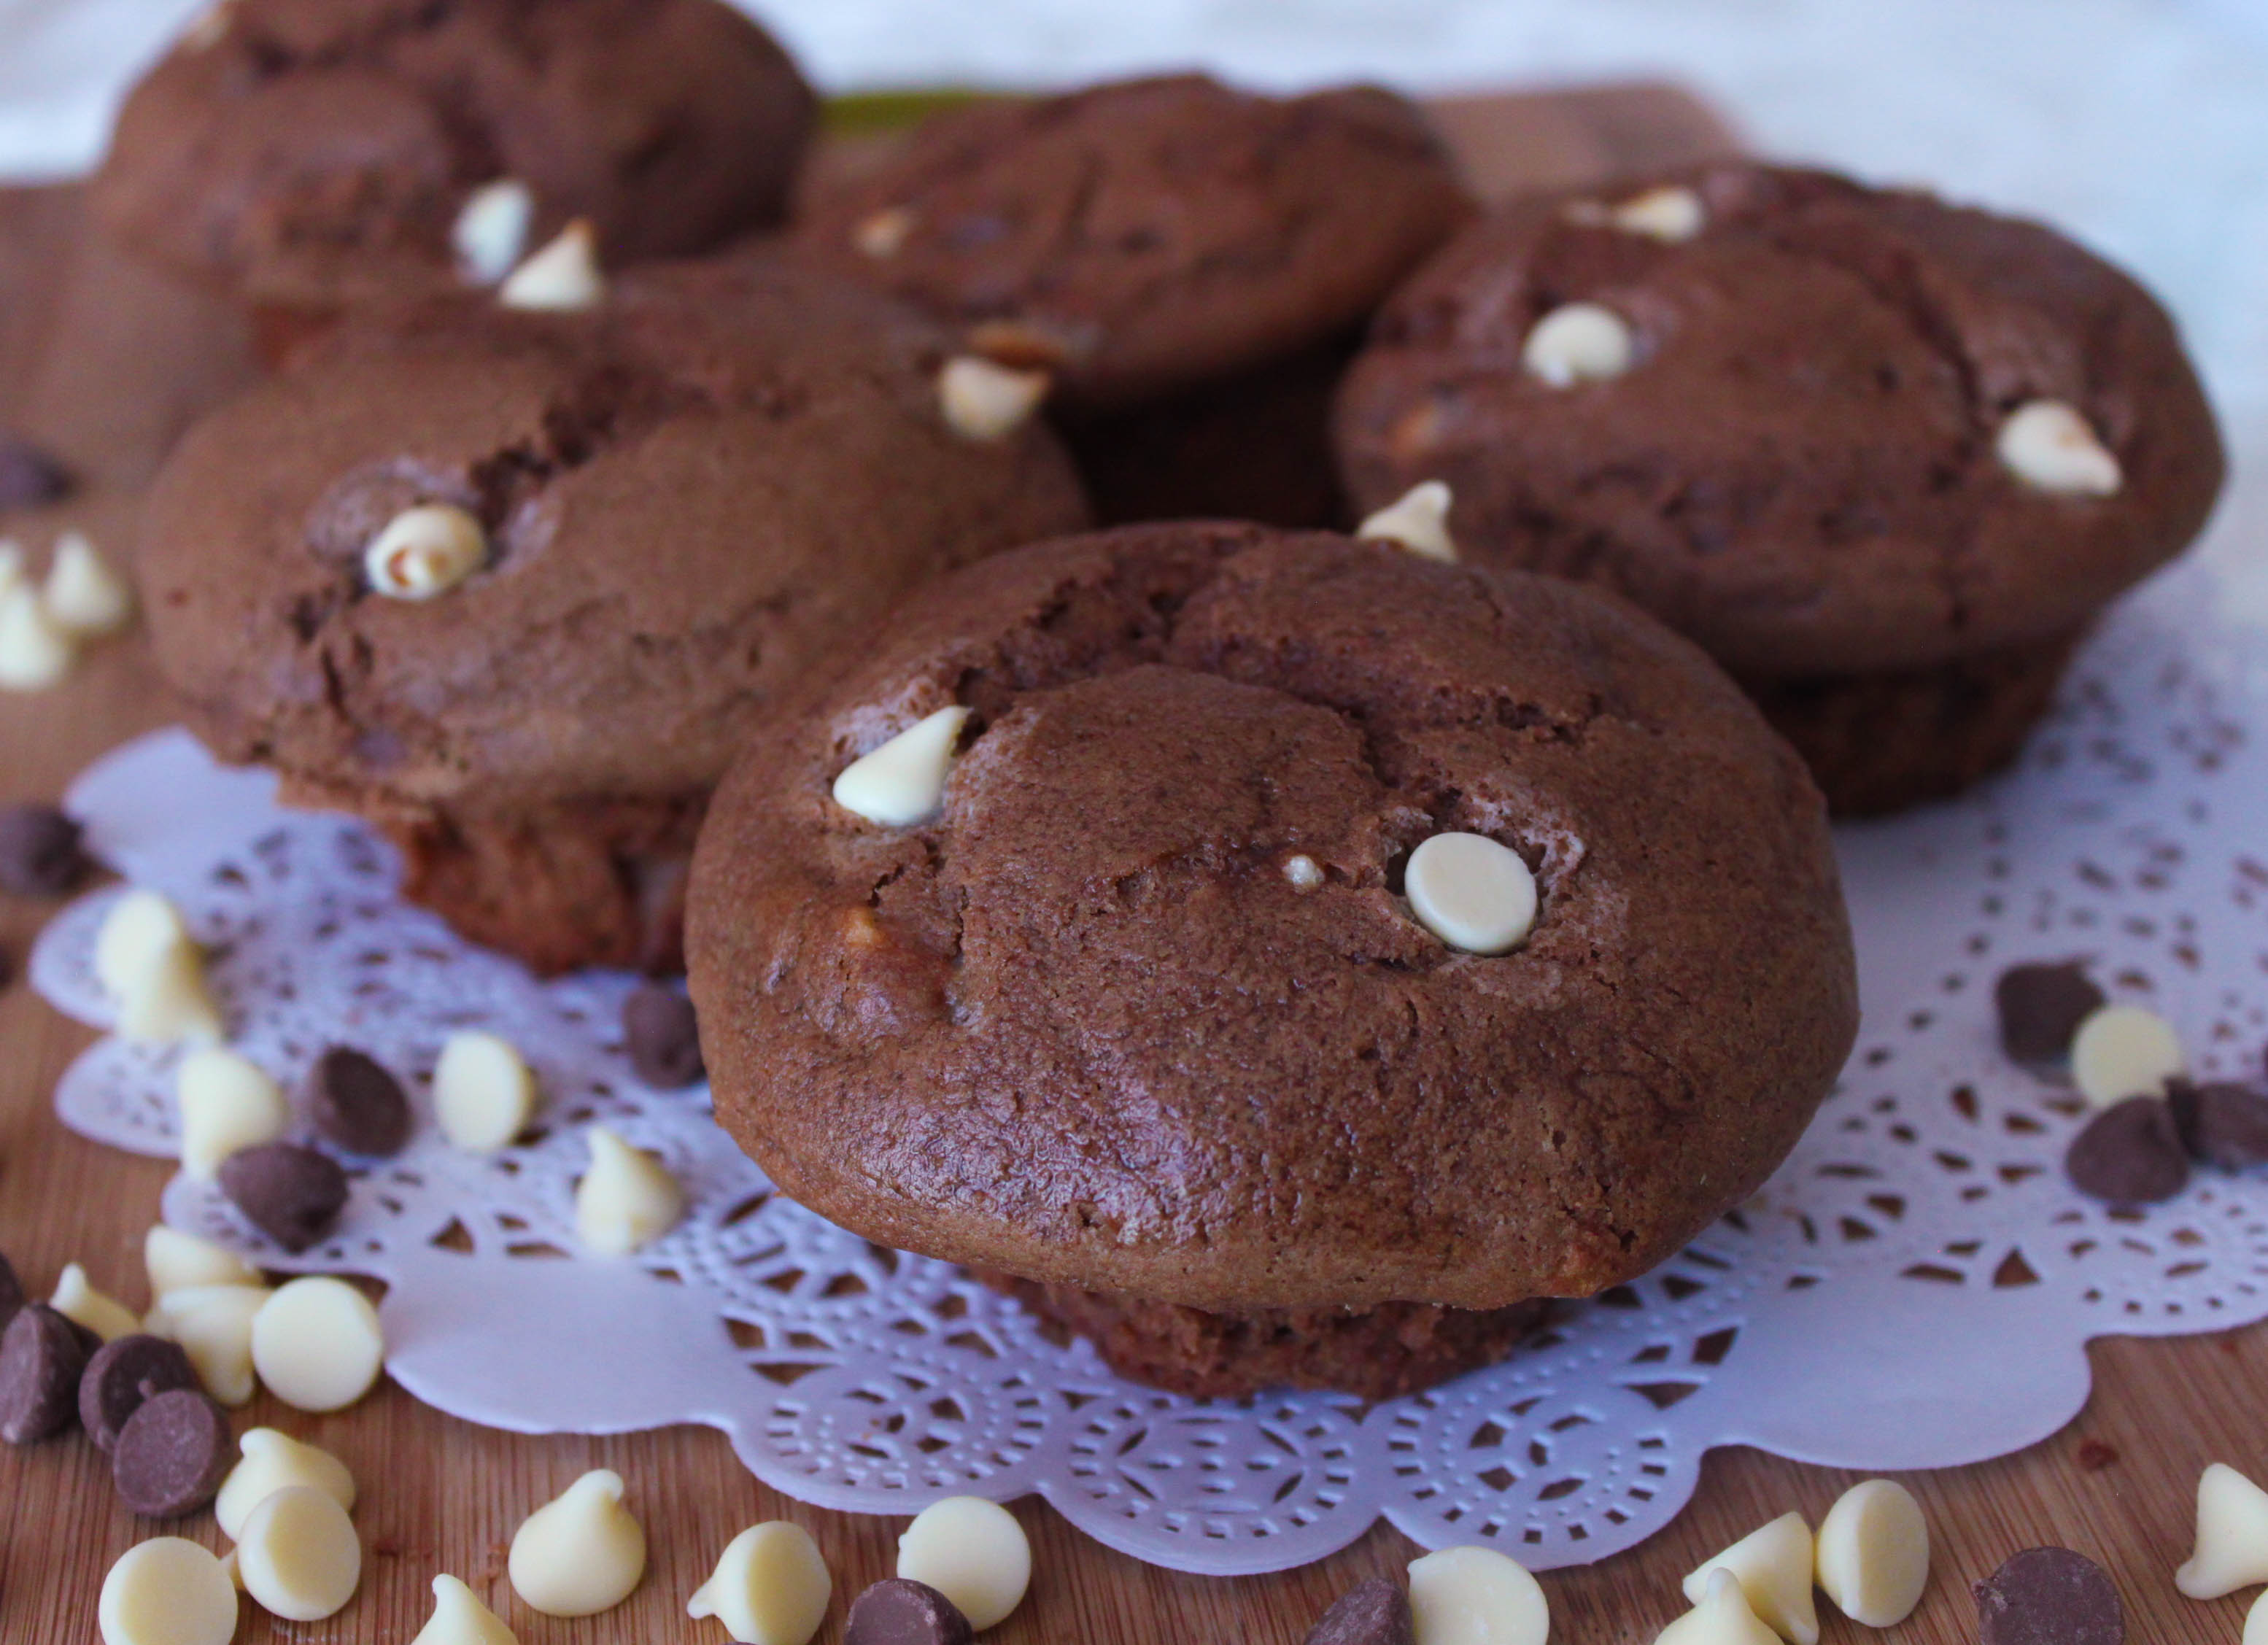 Triple chocolate muffins - soft, delicious and easy to make.